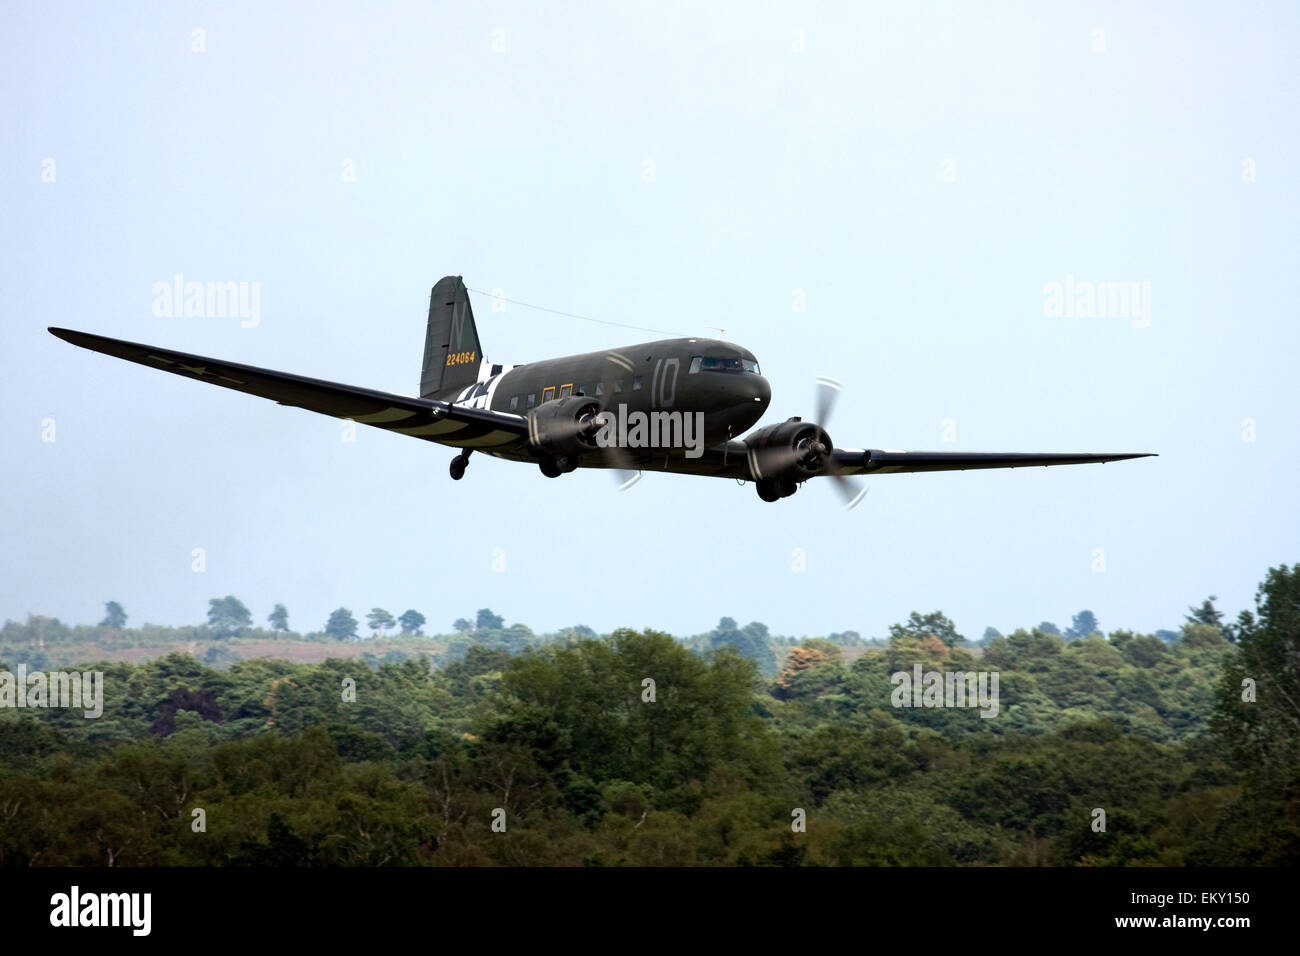 Douglas C-47A Skytrain DC-3 at  Farnborough International Airshow 2014. Stock Photo